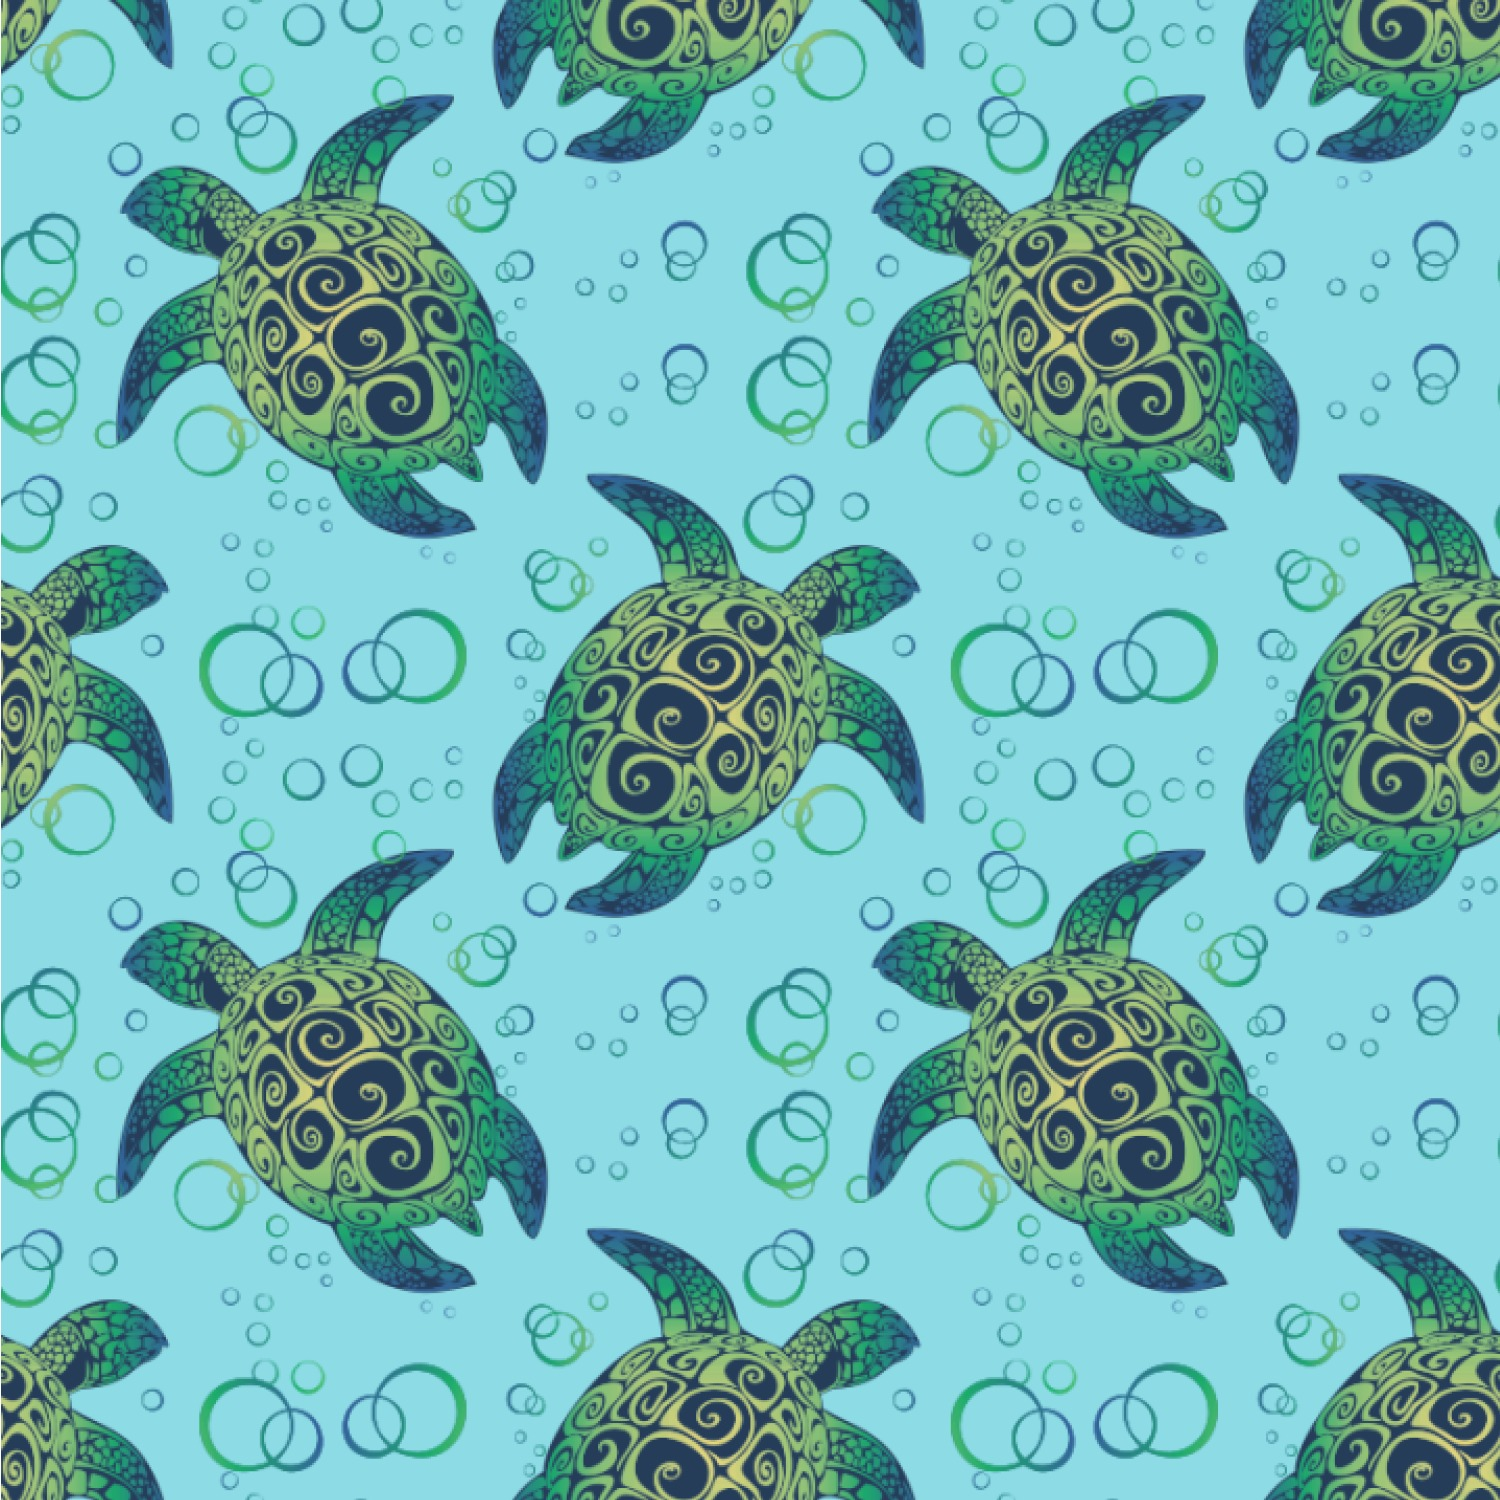 Sea Turtles Wallpaper Sea Turtles Wallpaper Surface Covering Water Activated 24